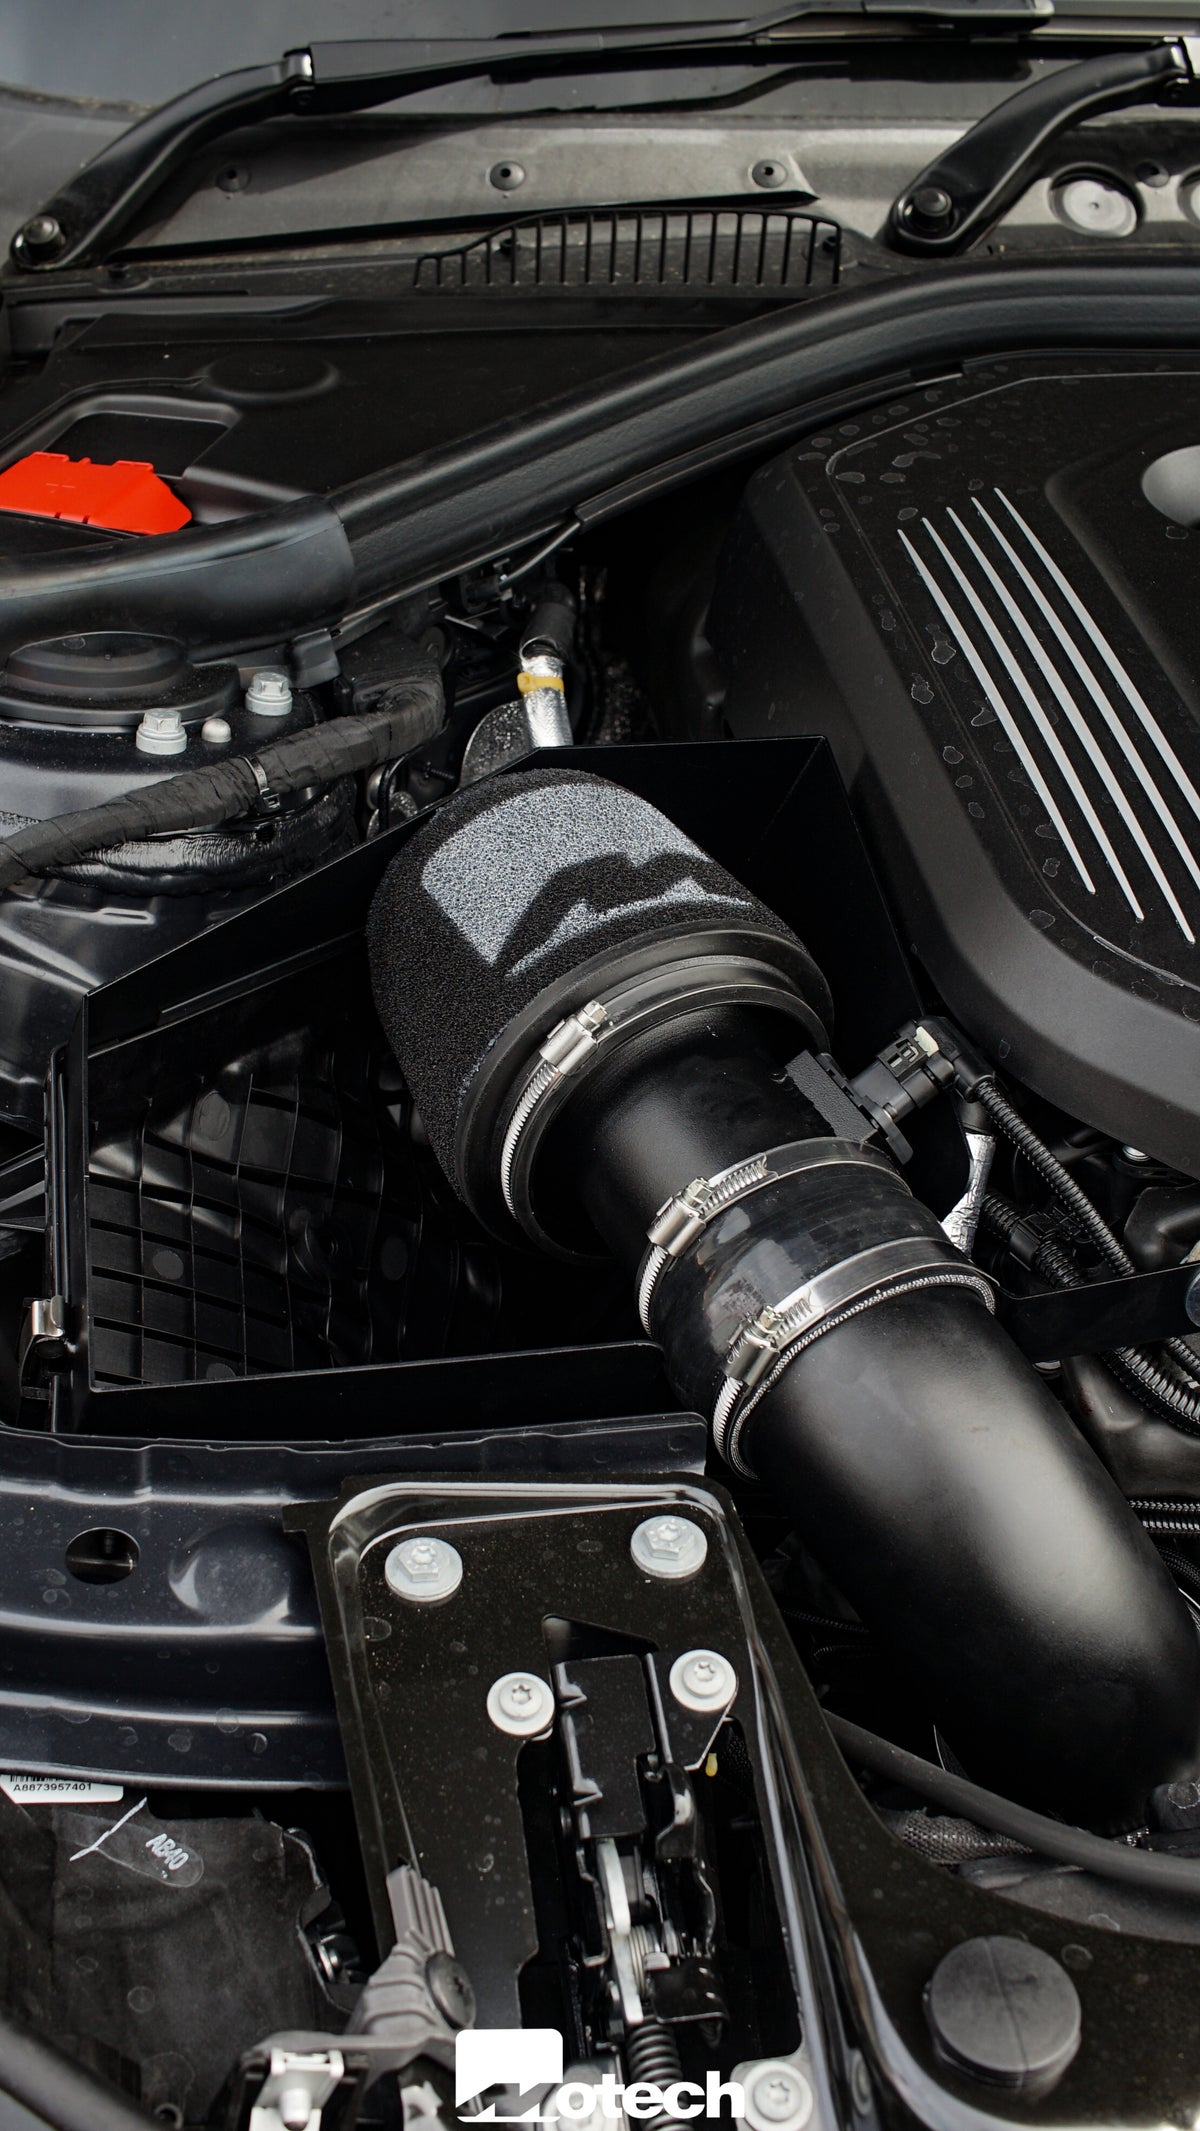 Image of Motech Pipercross Intake M140/M240/340/440